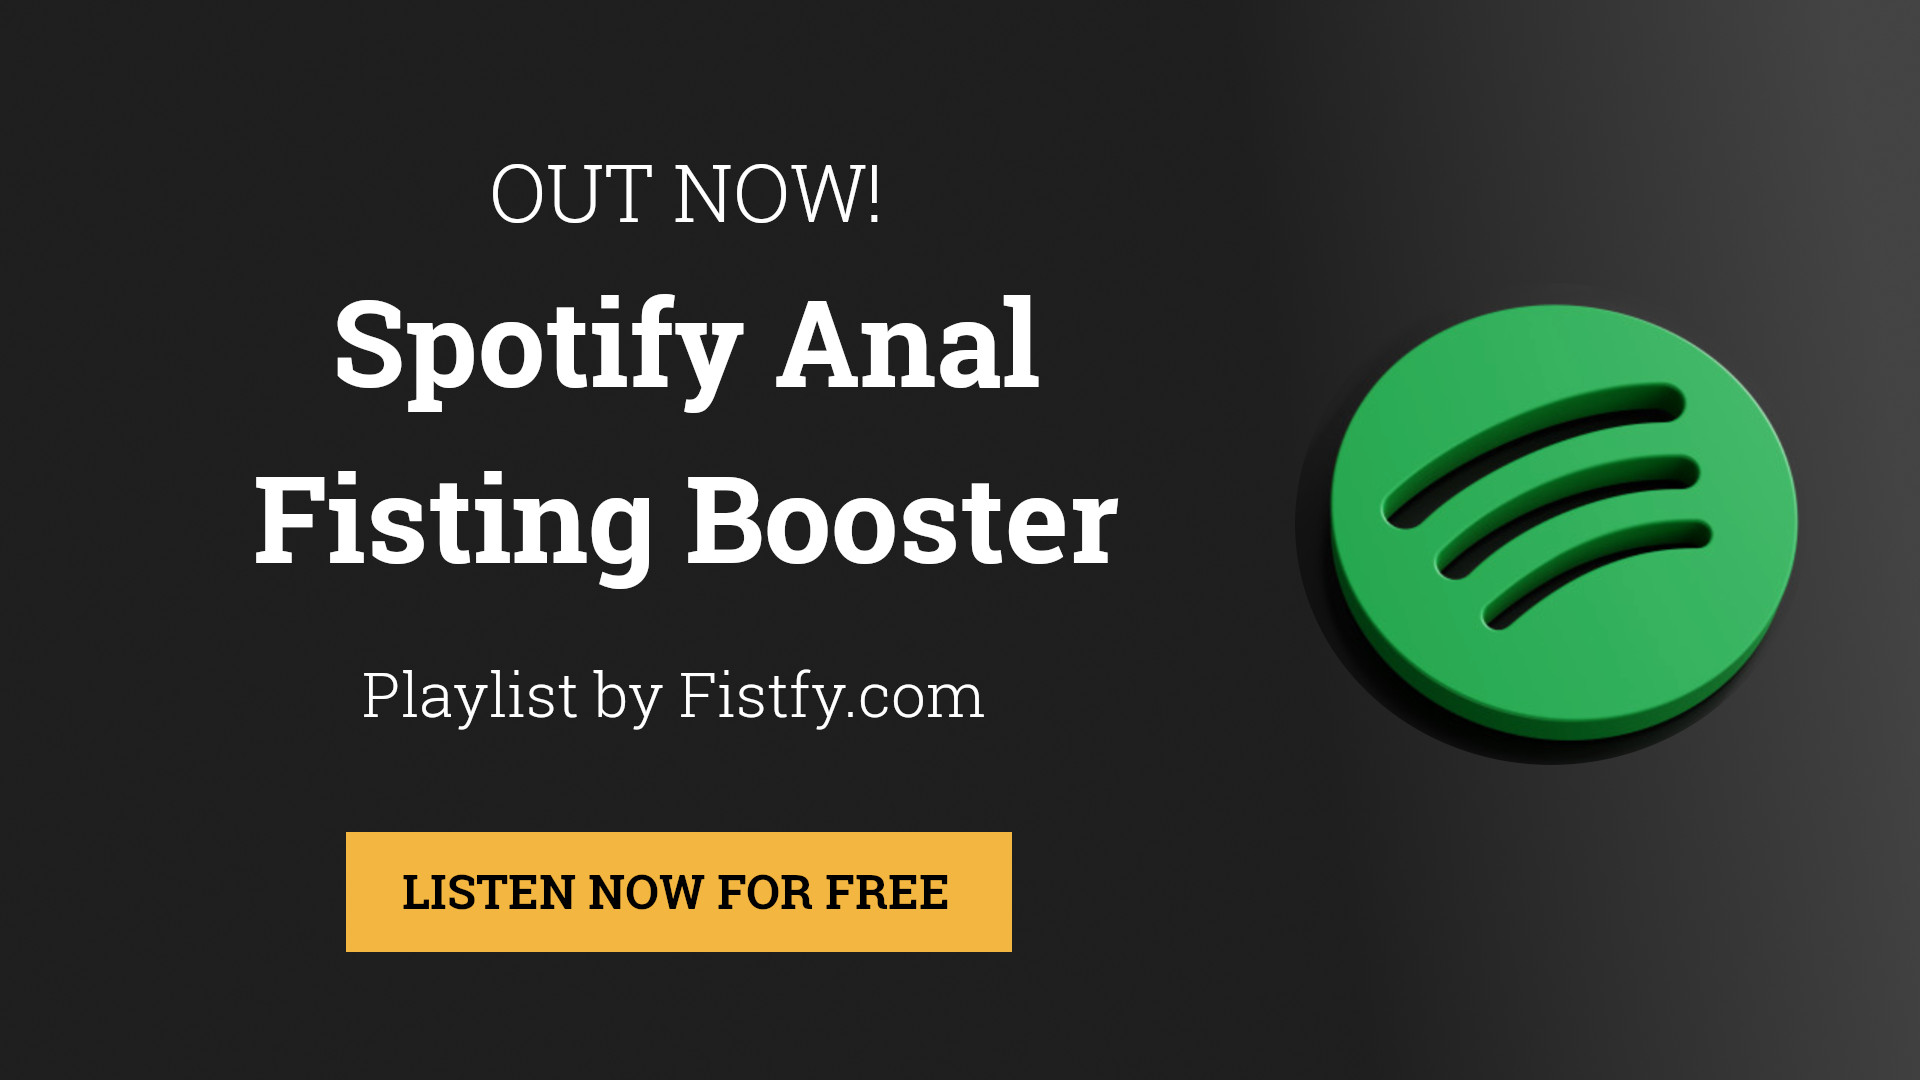 Spotify Anal Fisting Booster Playlist by Fistfy